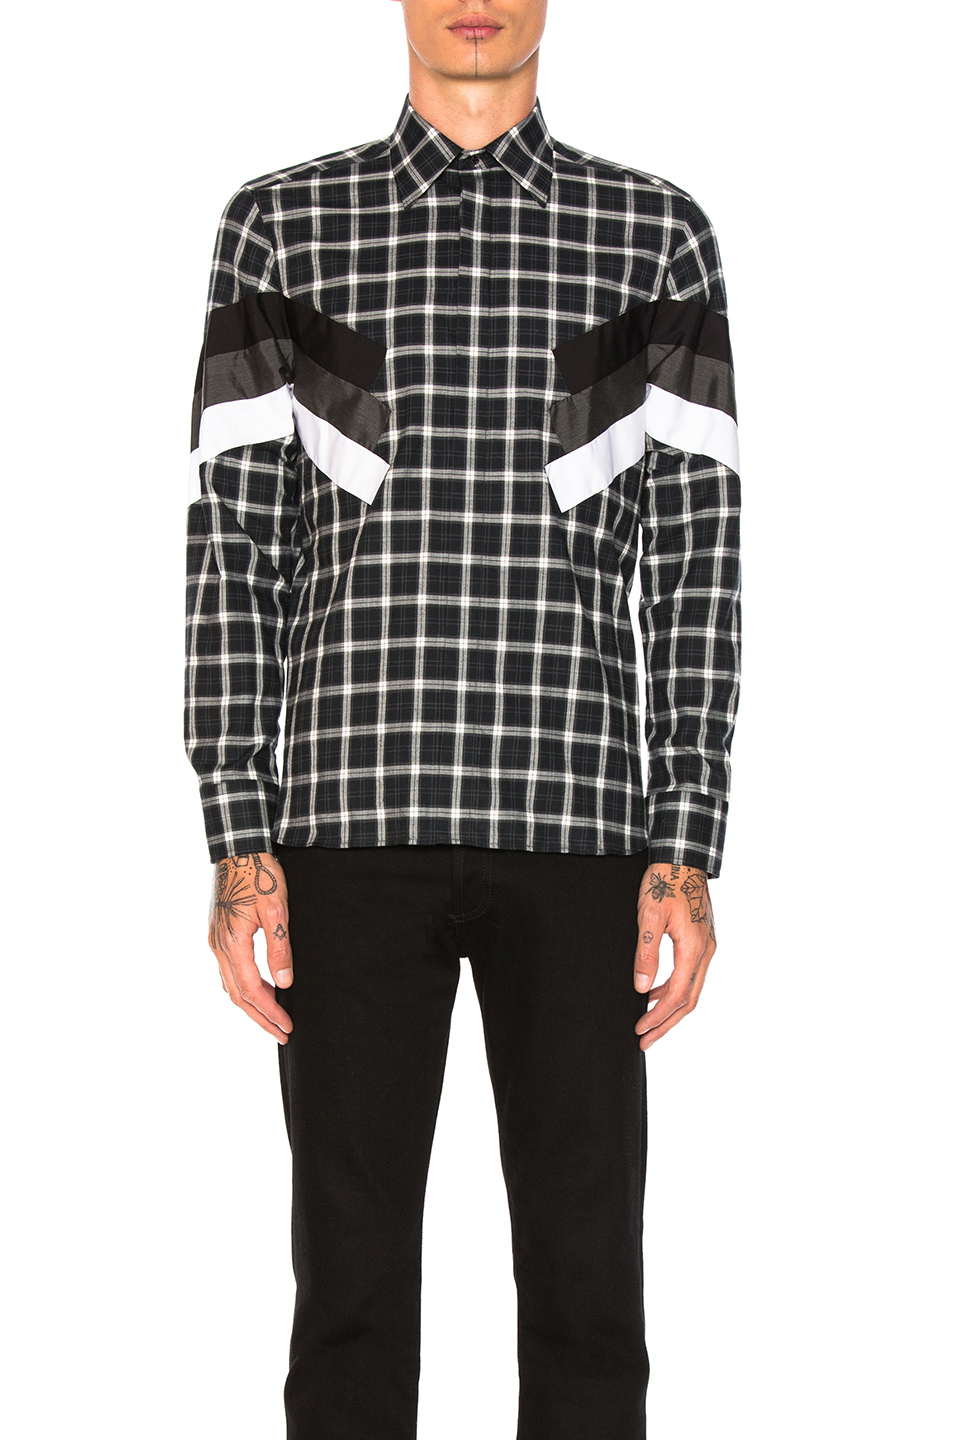 Neil Barrett Modernist Tartan Shirt in Black,Checkered & Plaid